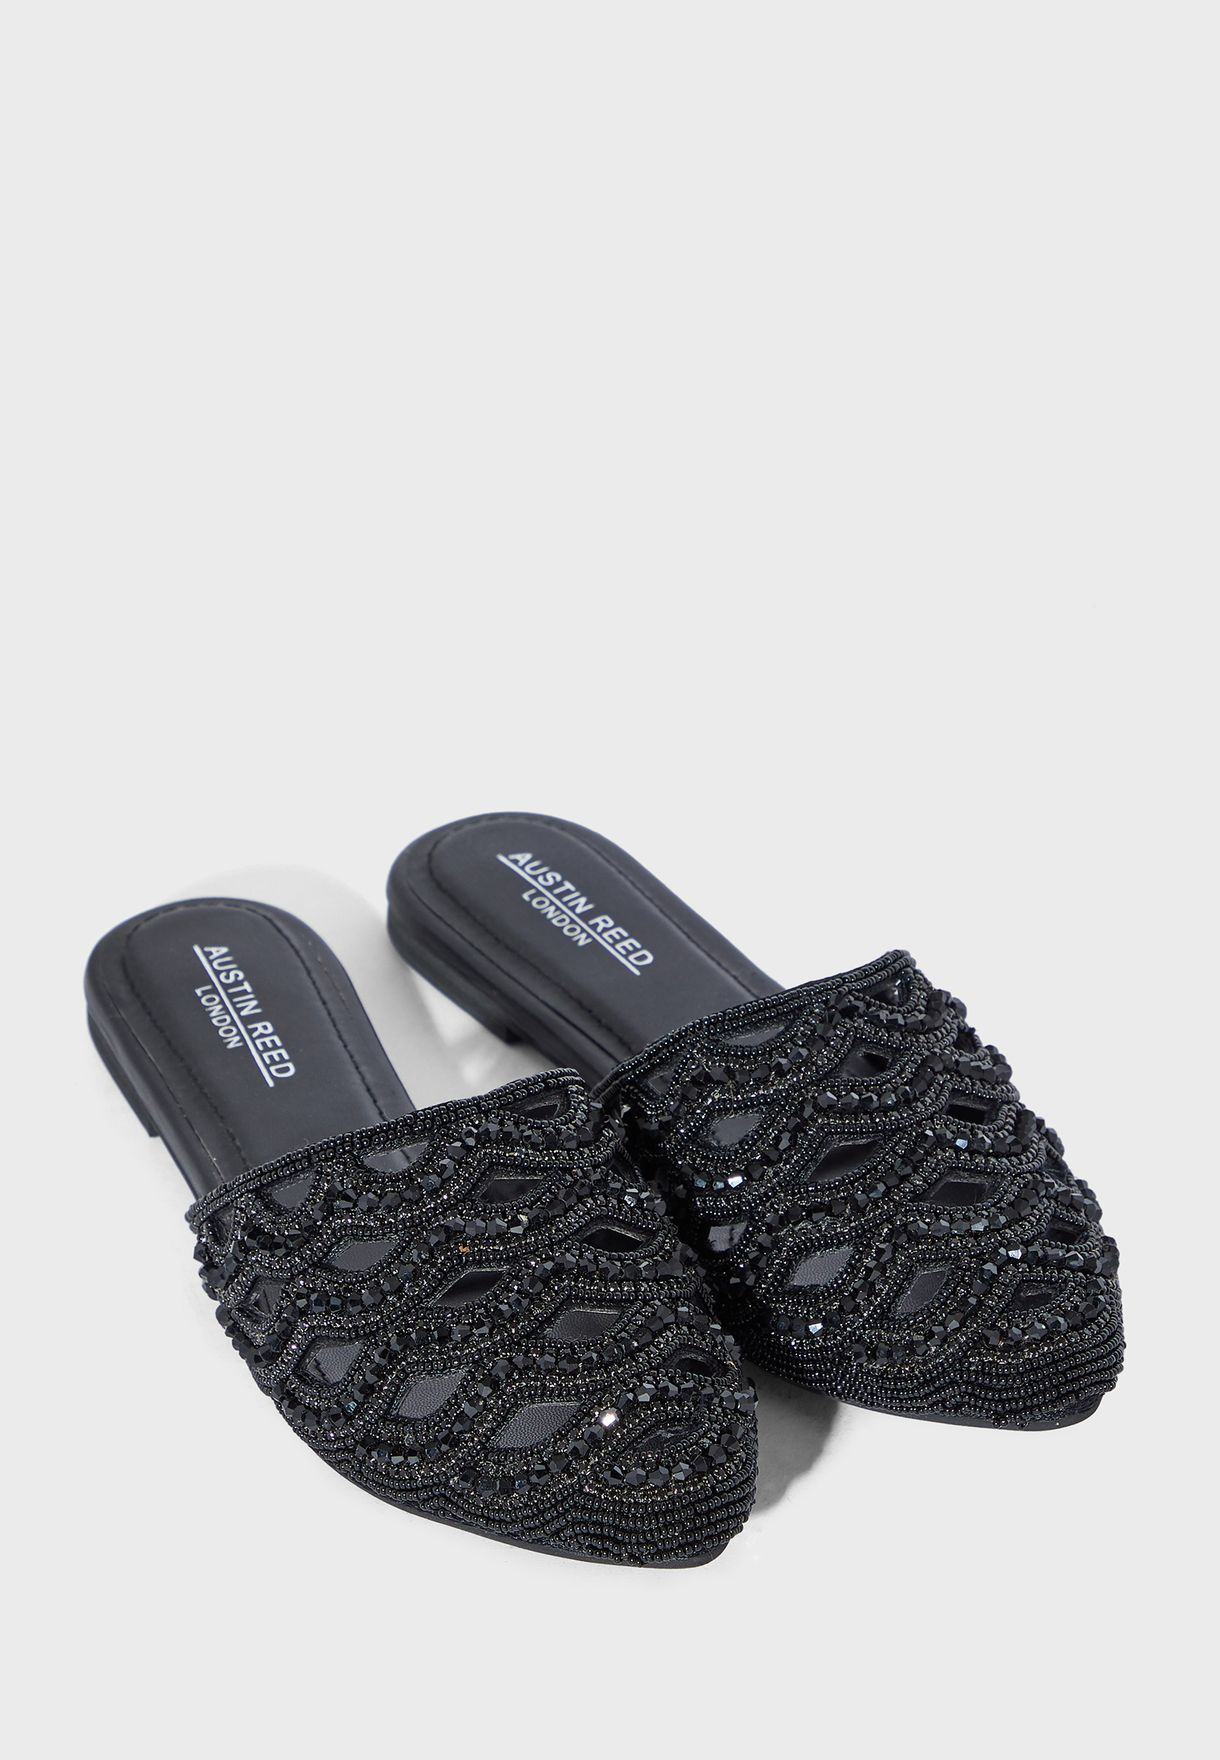 Buy Austin Reed Black Embellished Slip On For Women In Dubai Abu Dhabi Aulfs55dff